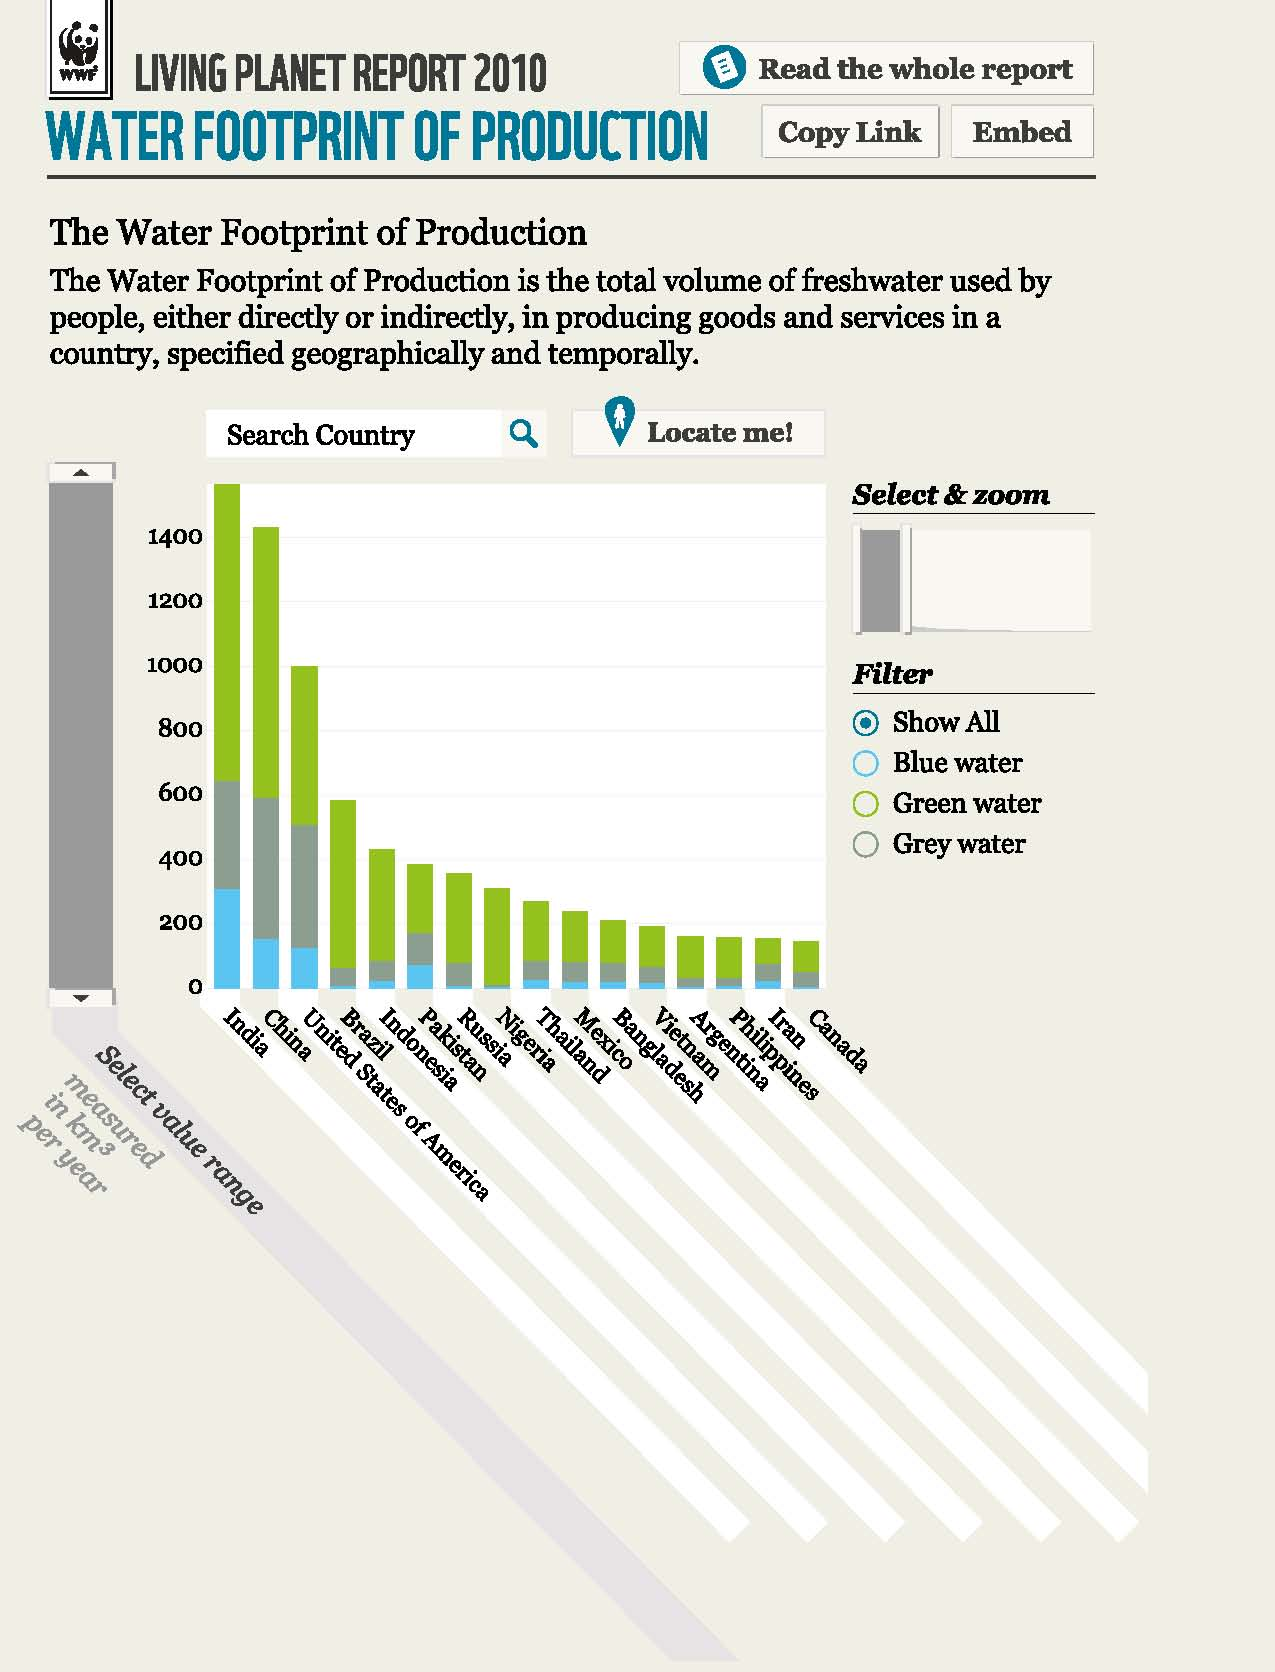 Water Footprint of Production of Select Countries